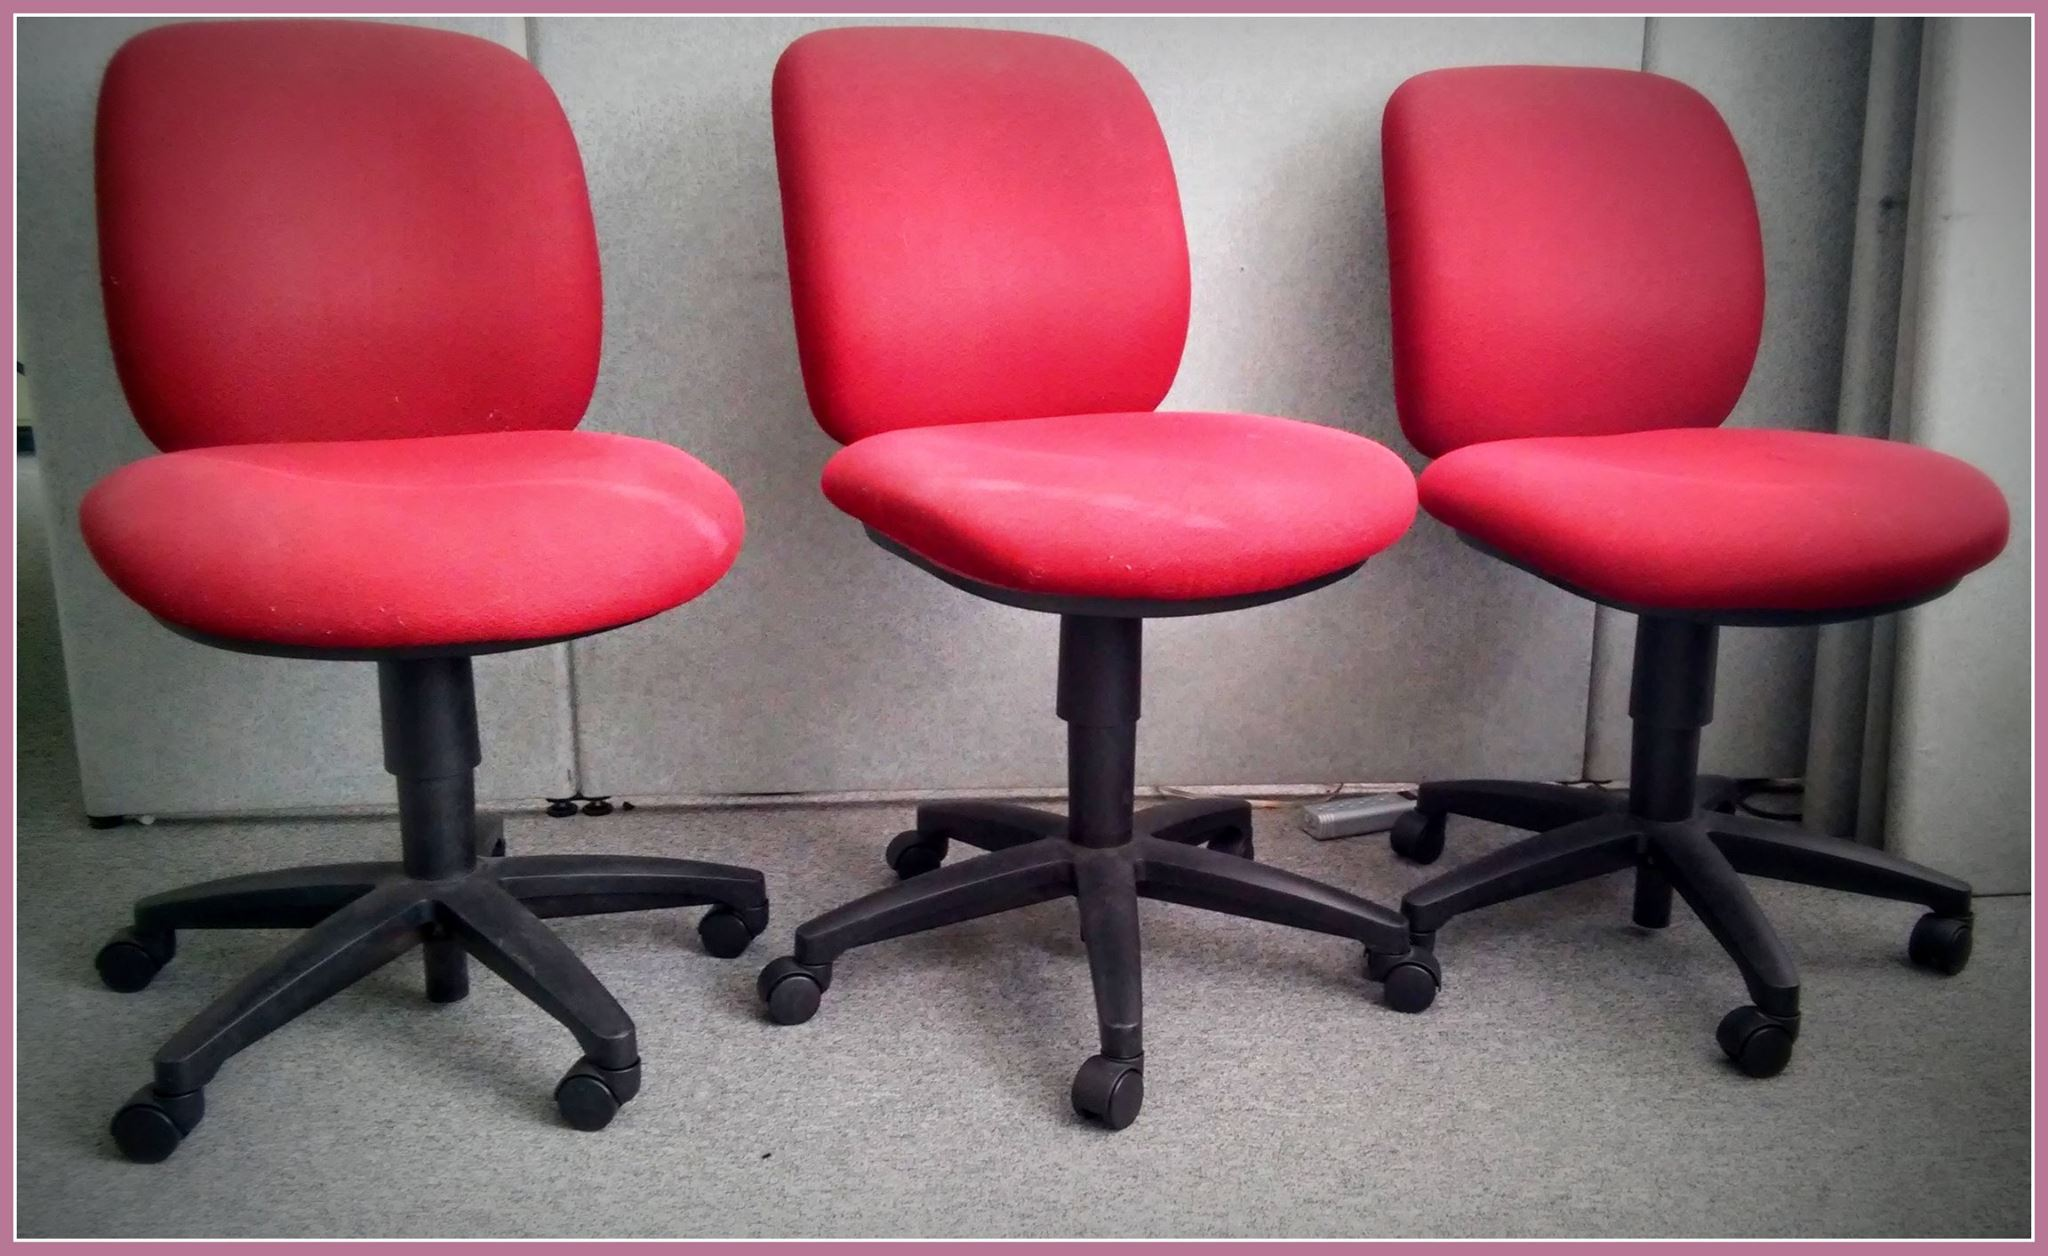 Office chairs 4 @ $21 each = The set for $80